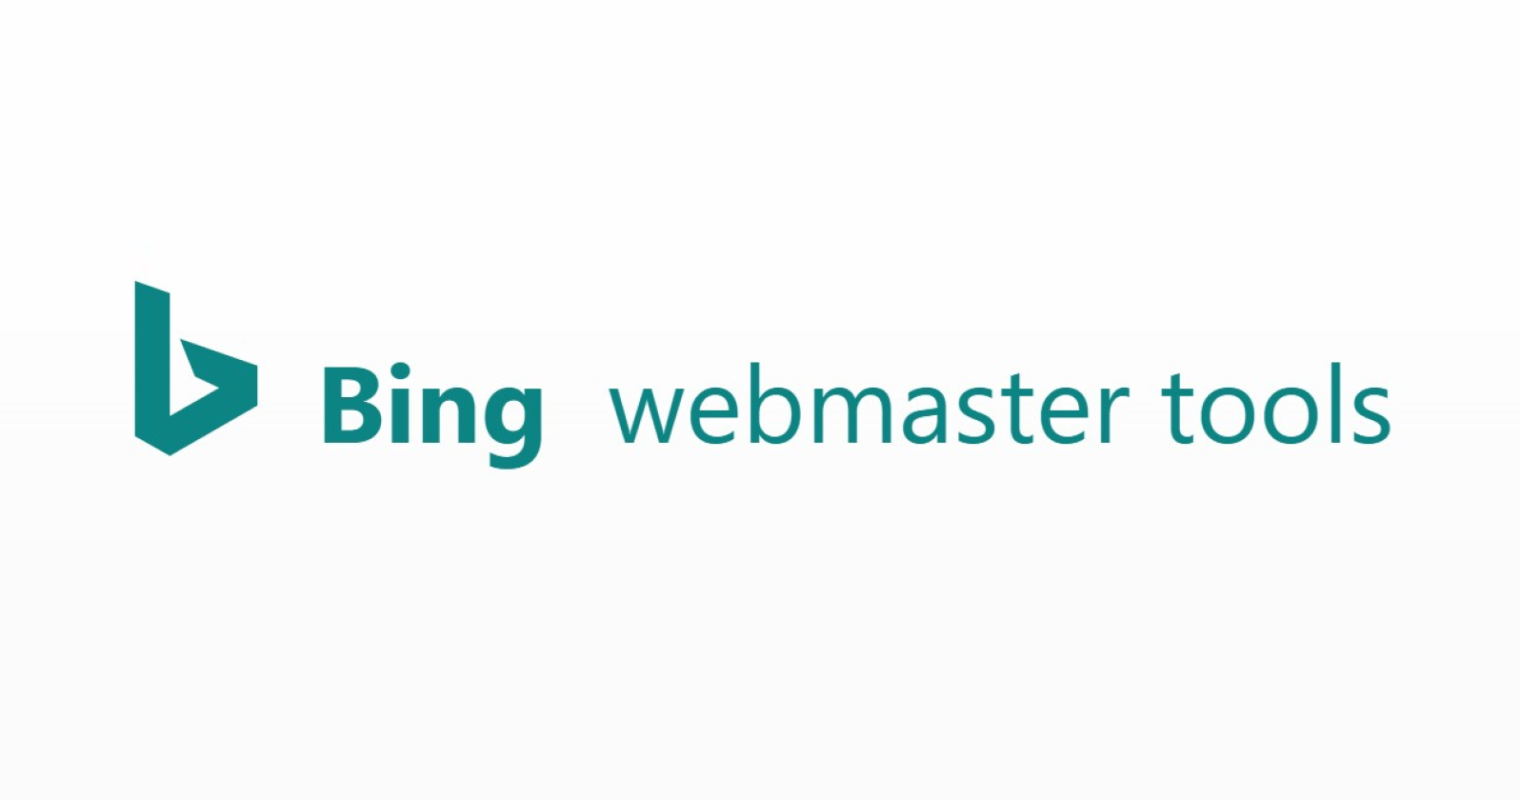 Bing Webmaster Tools: A Visual Guide to New & Updated Features